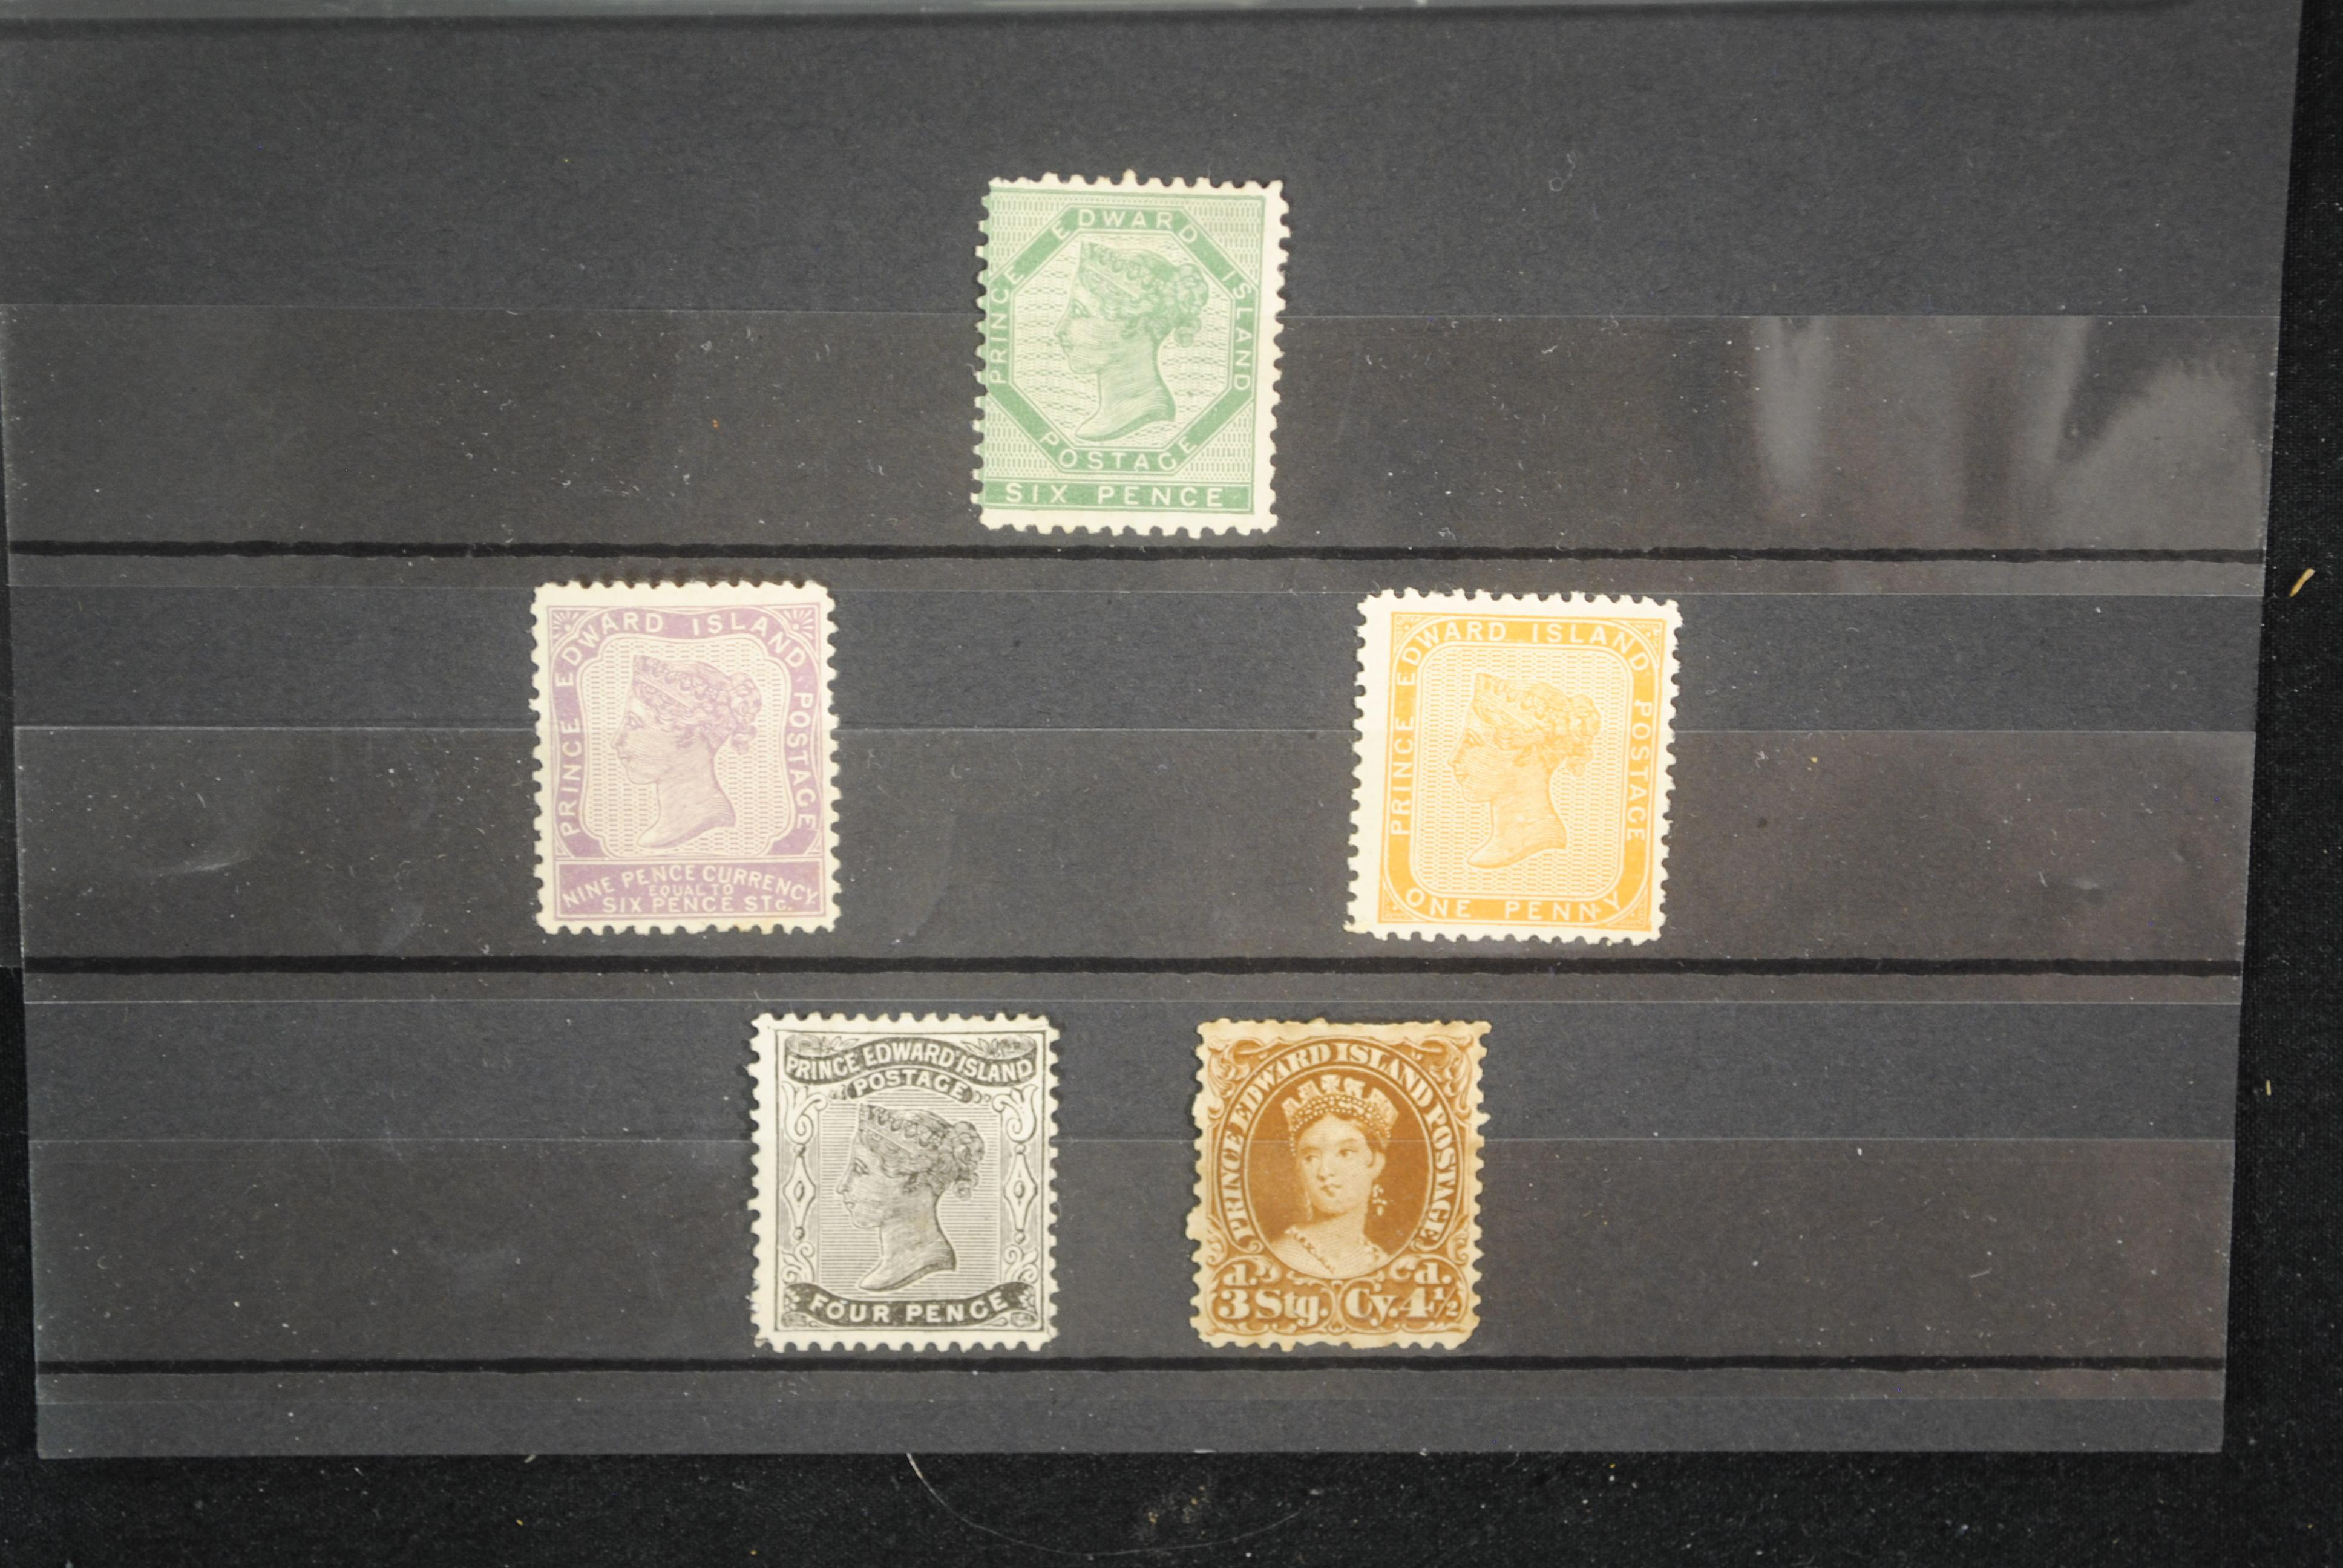 Canada Prince Edward Island 1861-1870 Stamp Collection